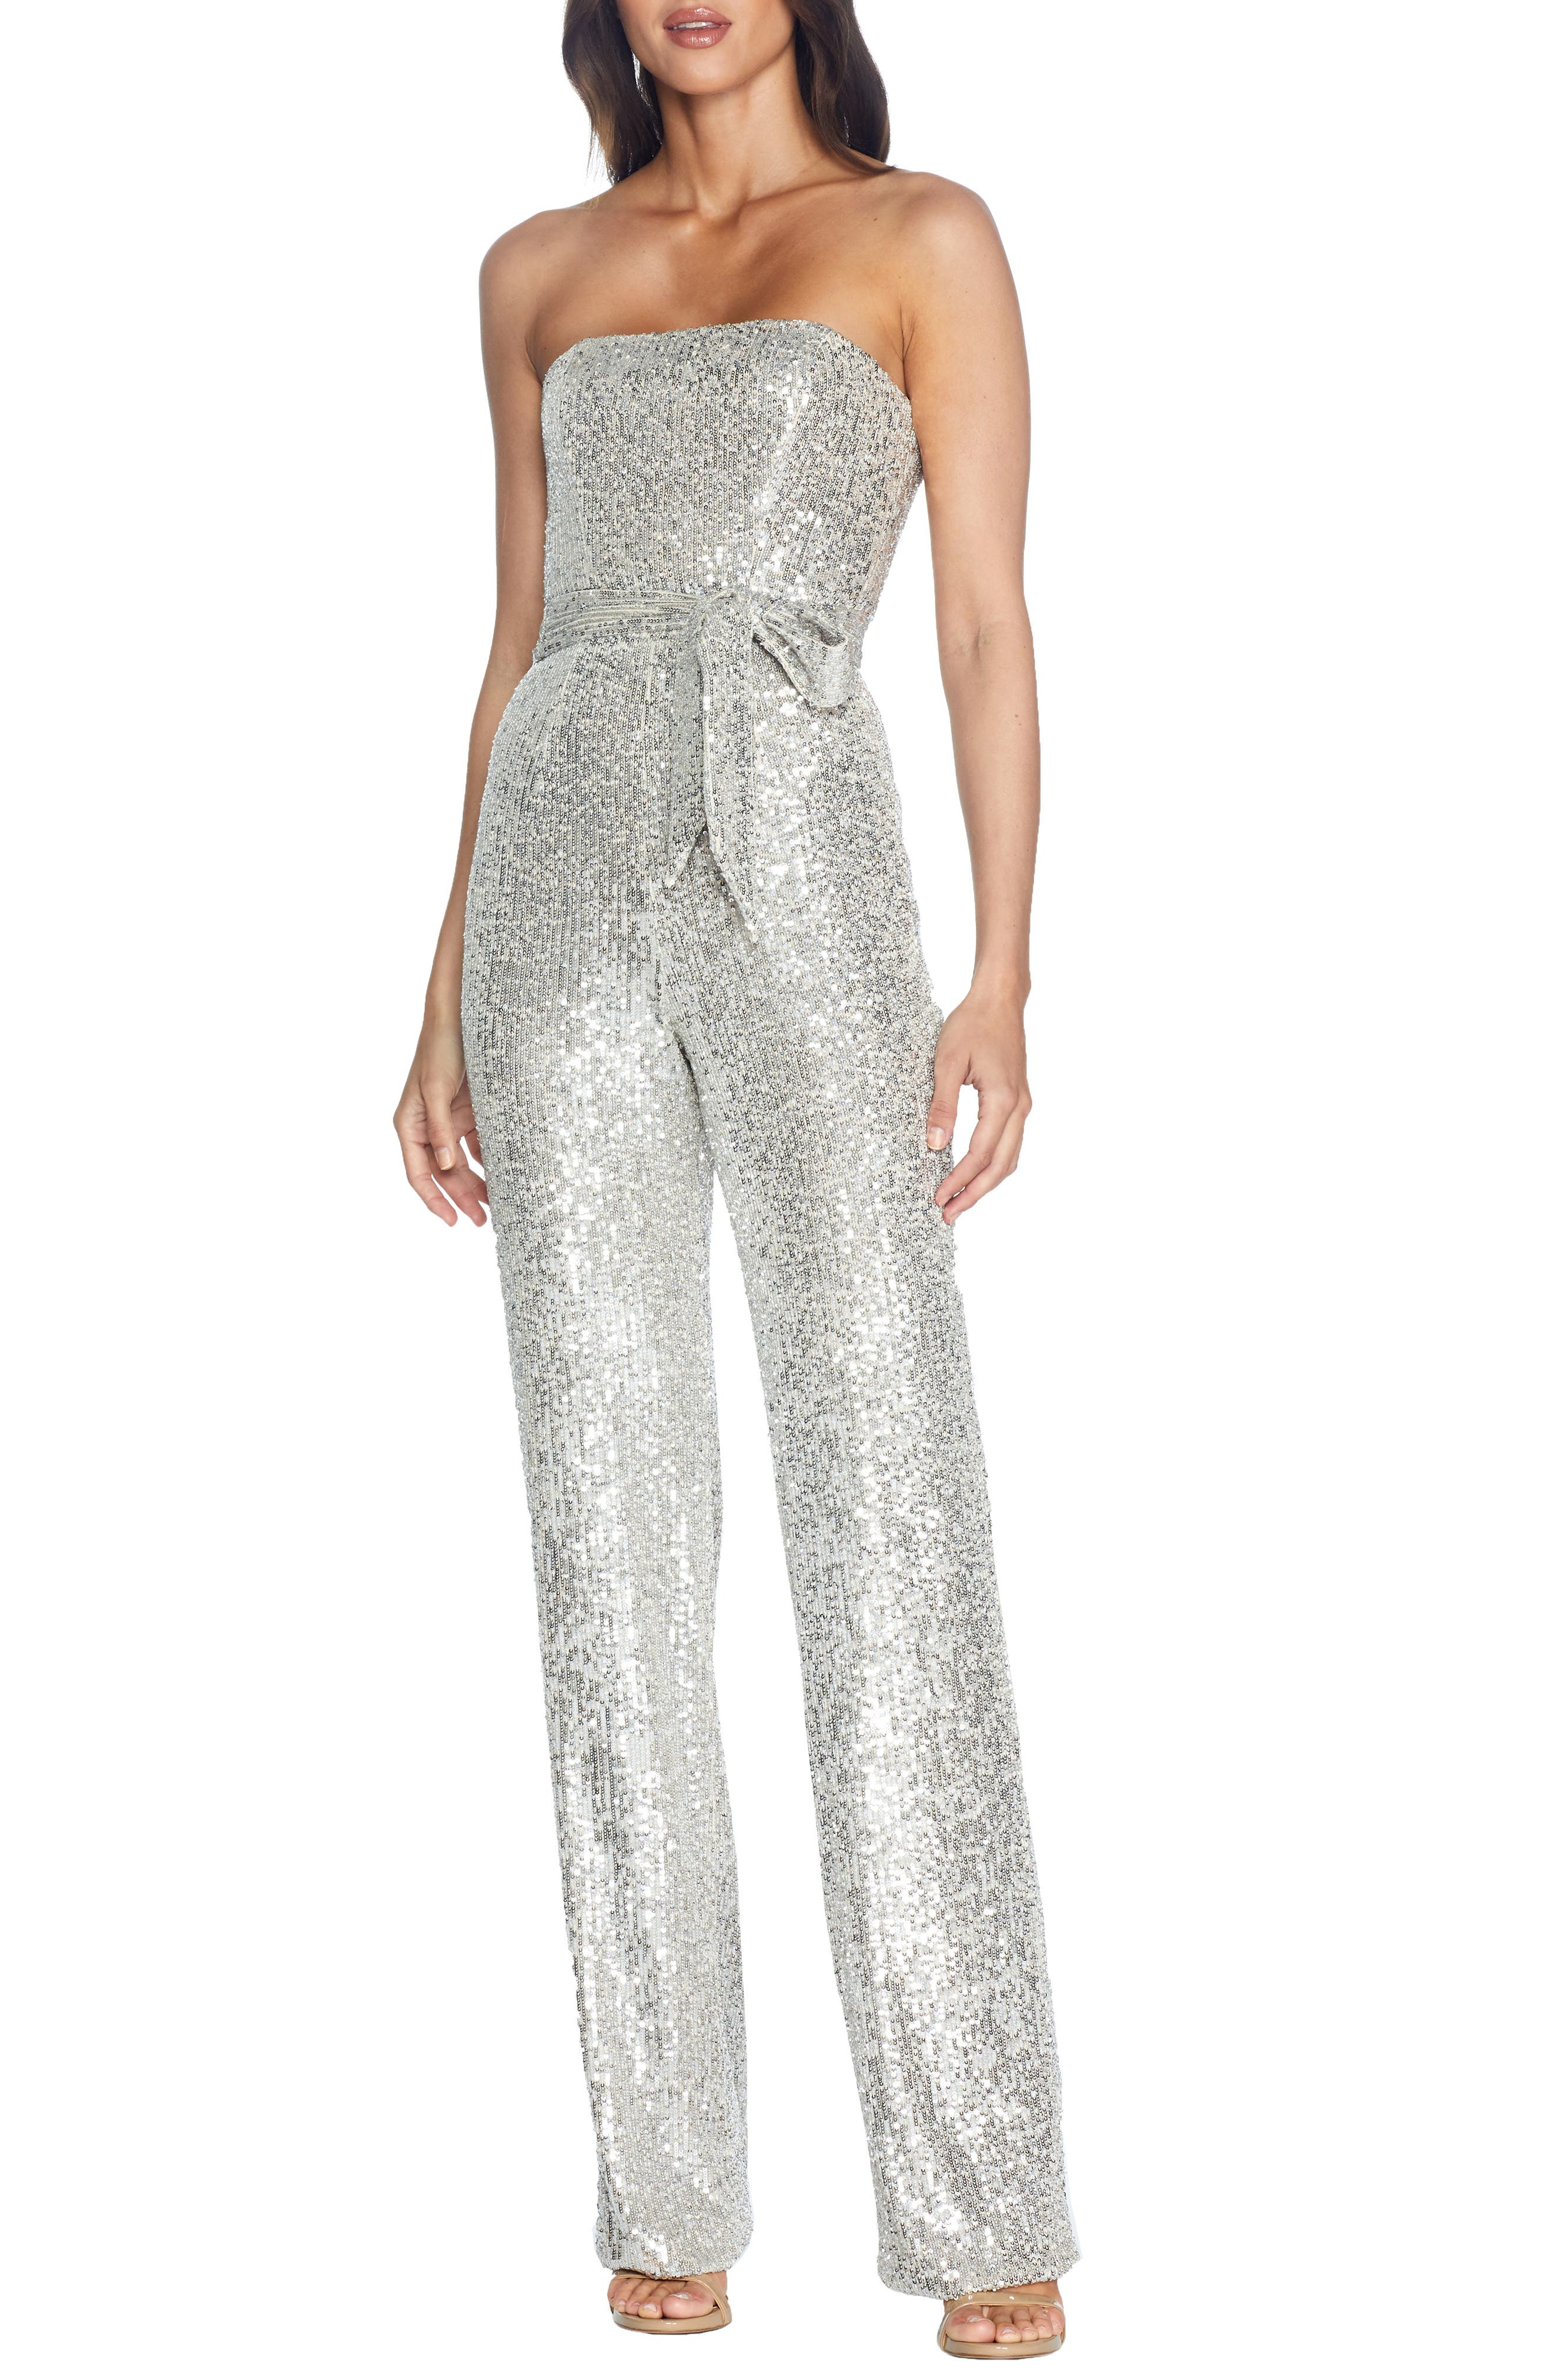 70s Jumpsuit | Disco Jumpsuits, Sequin Rompers Womens Dress The Population Andy Sequin Strapless Jumpsuit Size XX-Large - Metallic $196.80 AT vintagedancer.com